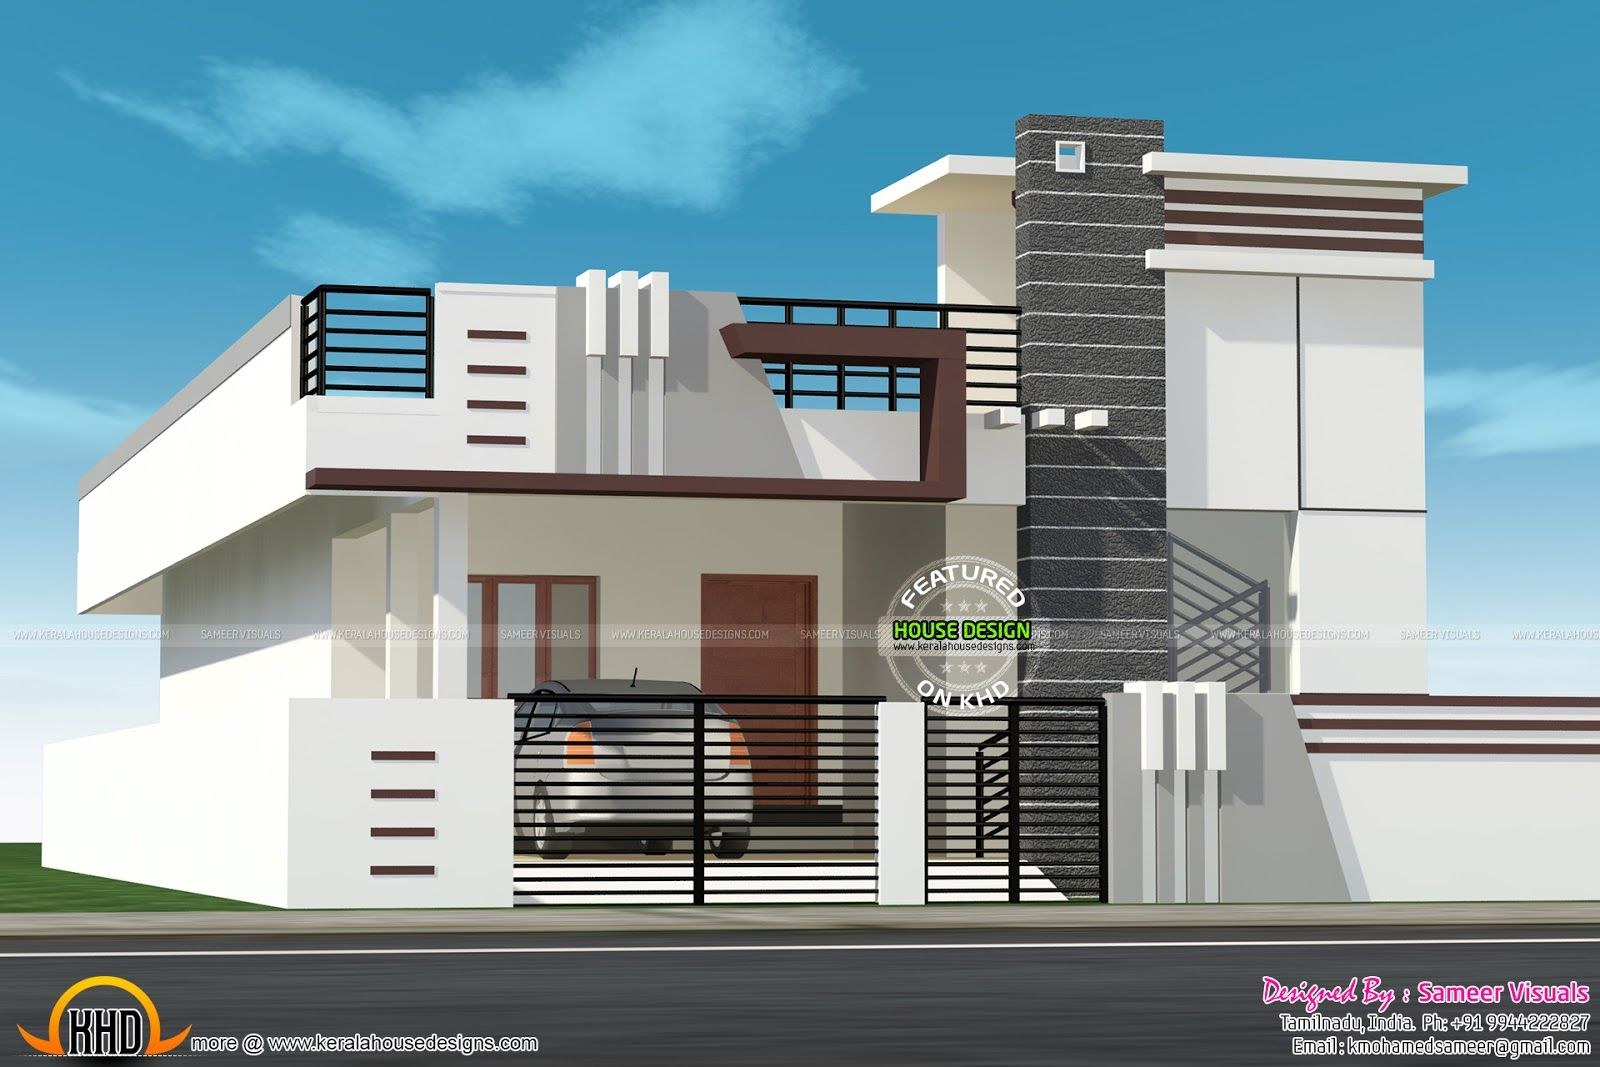 Changing The Front Elevation Of A House : Small house with car parking construction elevation